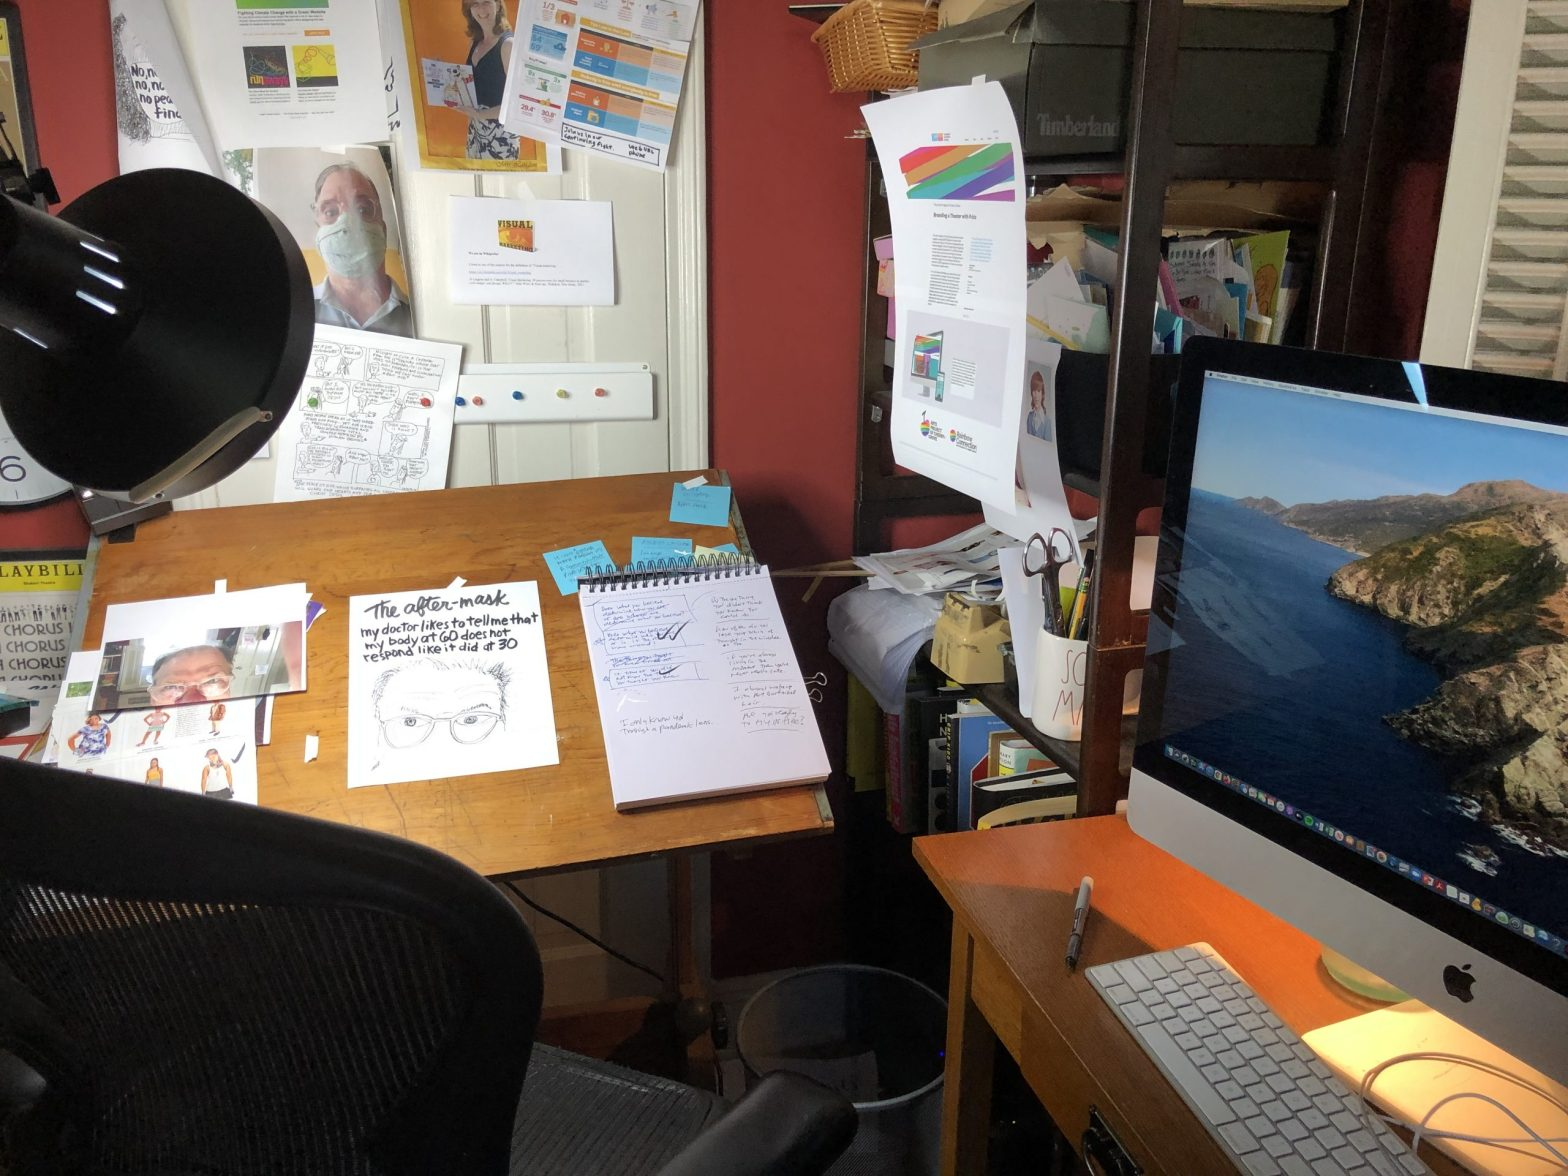 Thumbnail for Drawing a Conclusion: How a Drawing Table Sparked a New Way of Creating Communication Tools